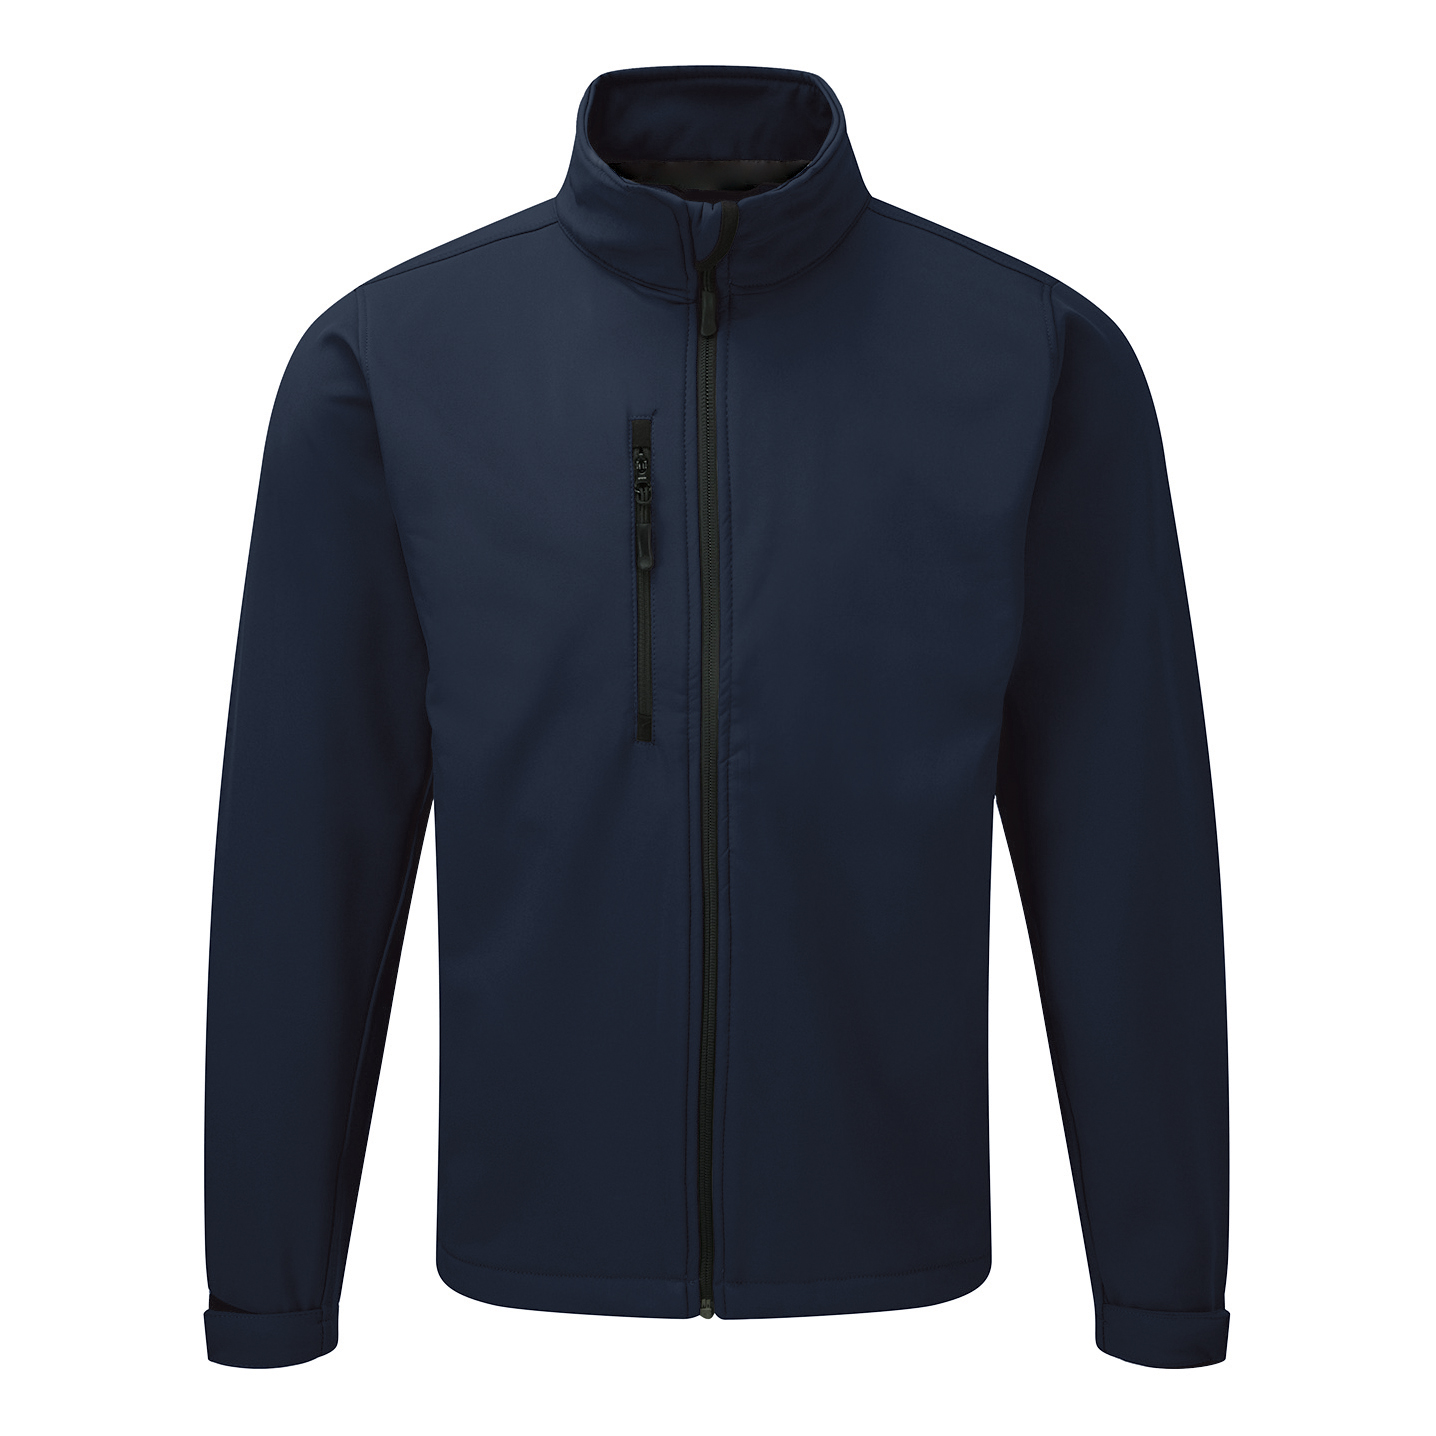 Jacket Soft Shell Water Resistant Breathable 320gsm 3XL Navy Blue